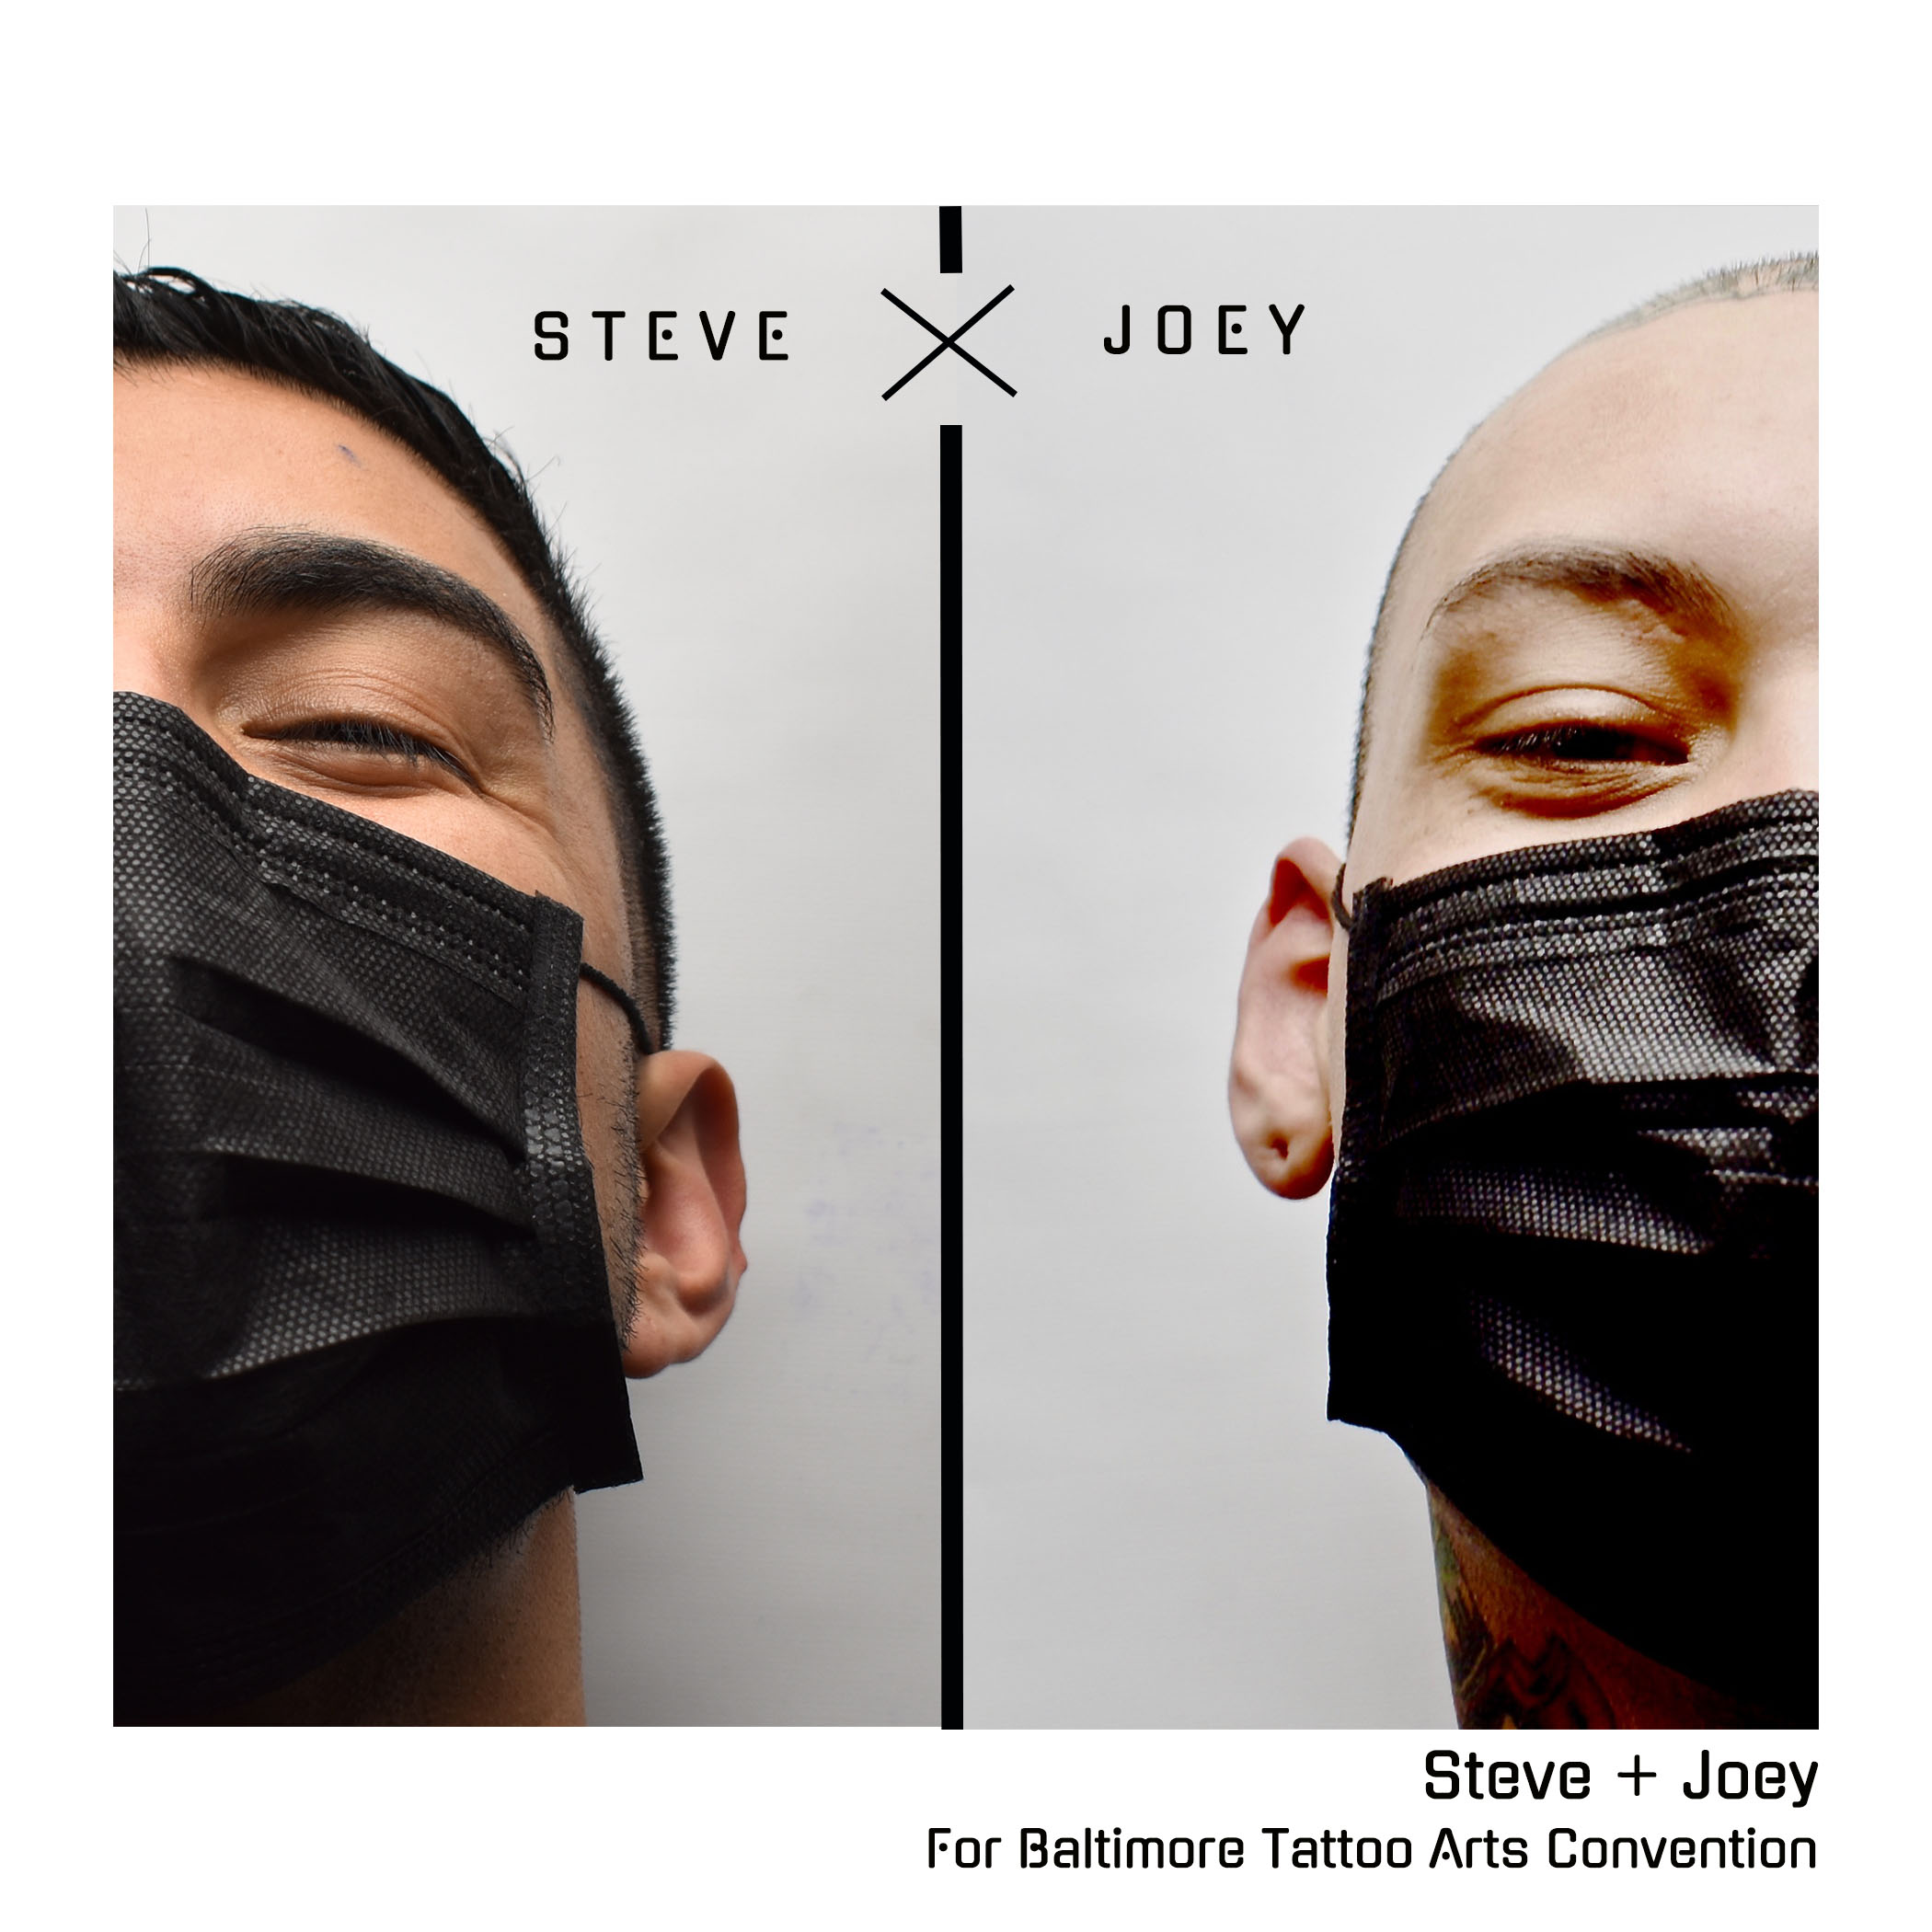 Steve+Joey (Baltimore).jpg